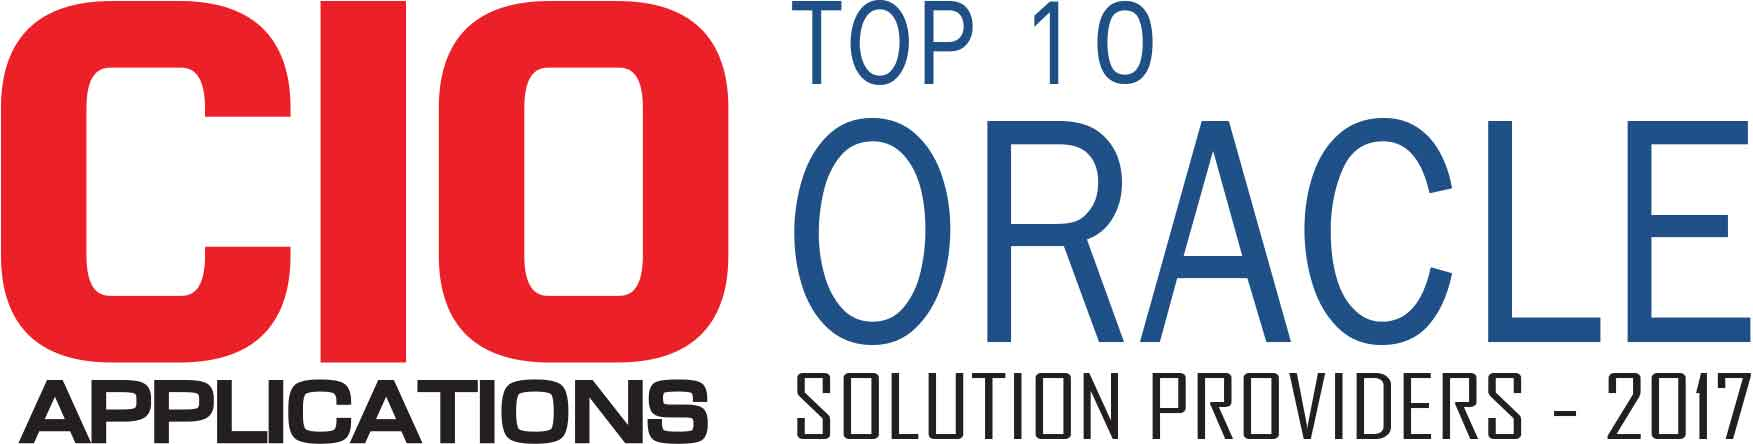 Top 10 Oracle Solution Companies - 2017